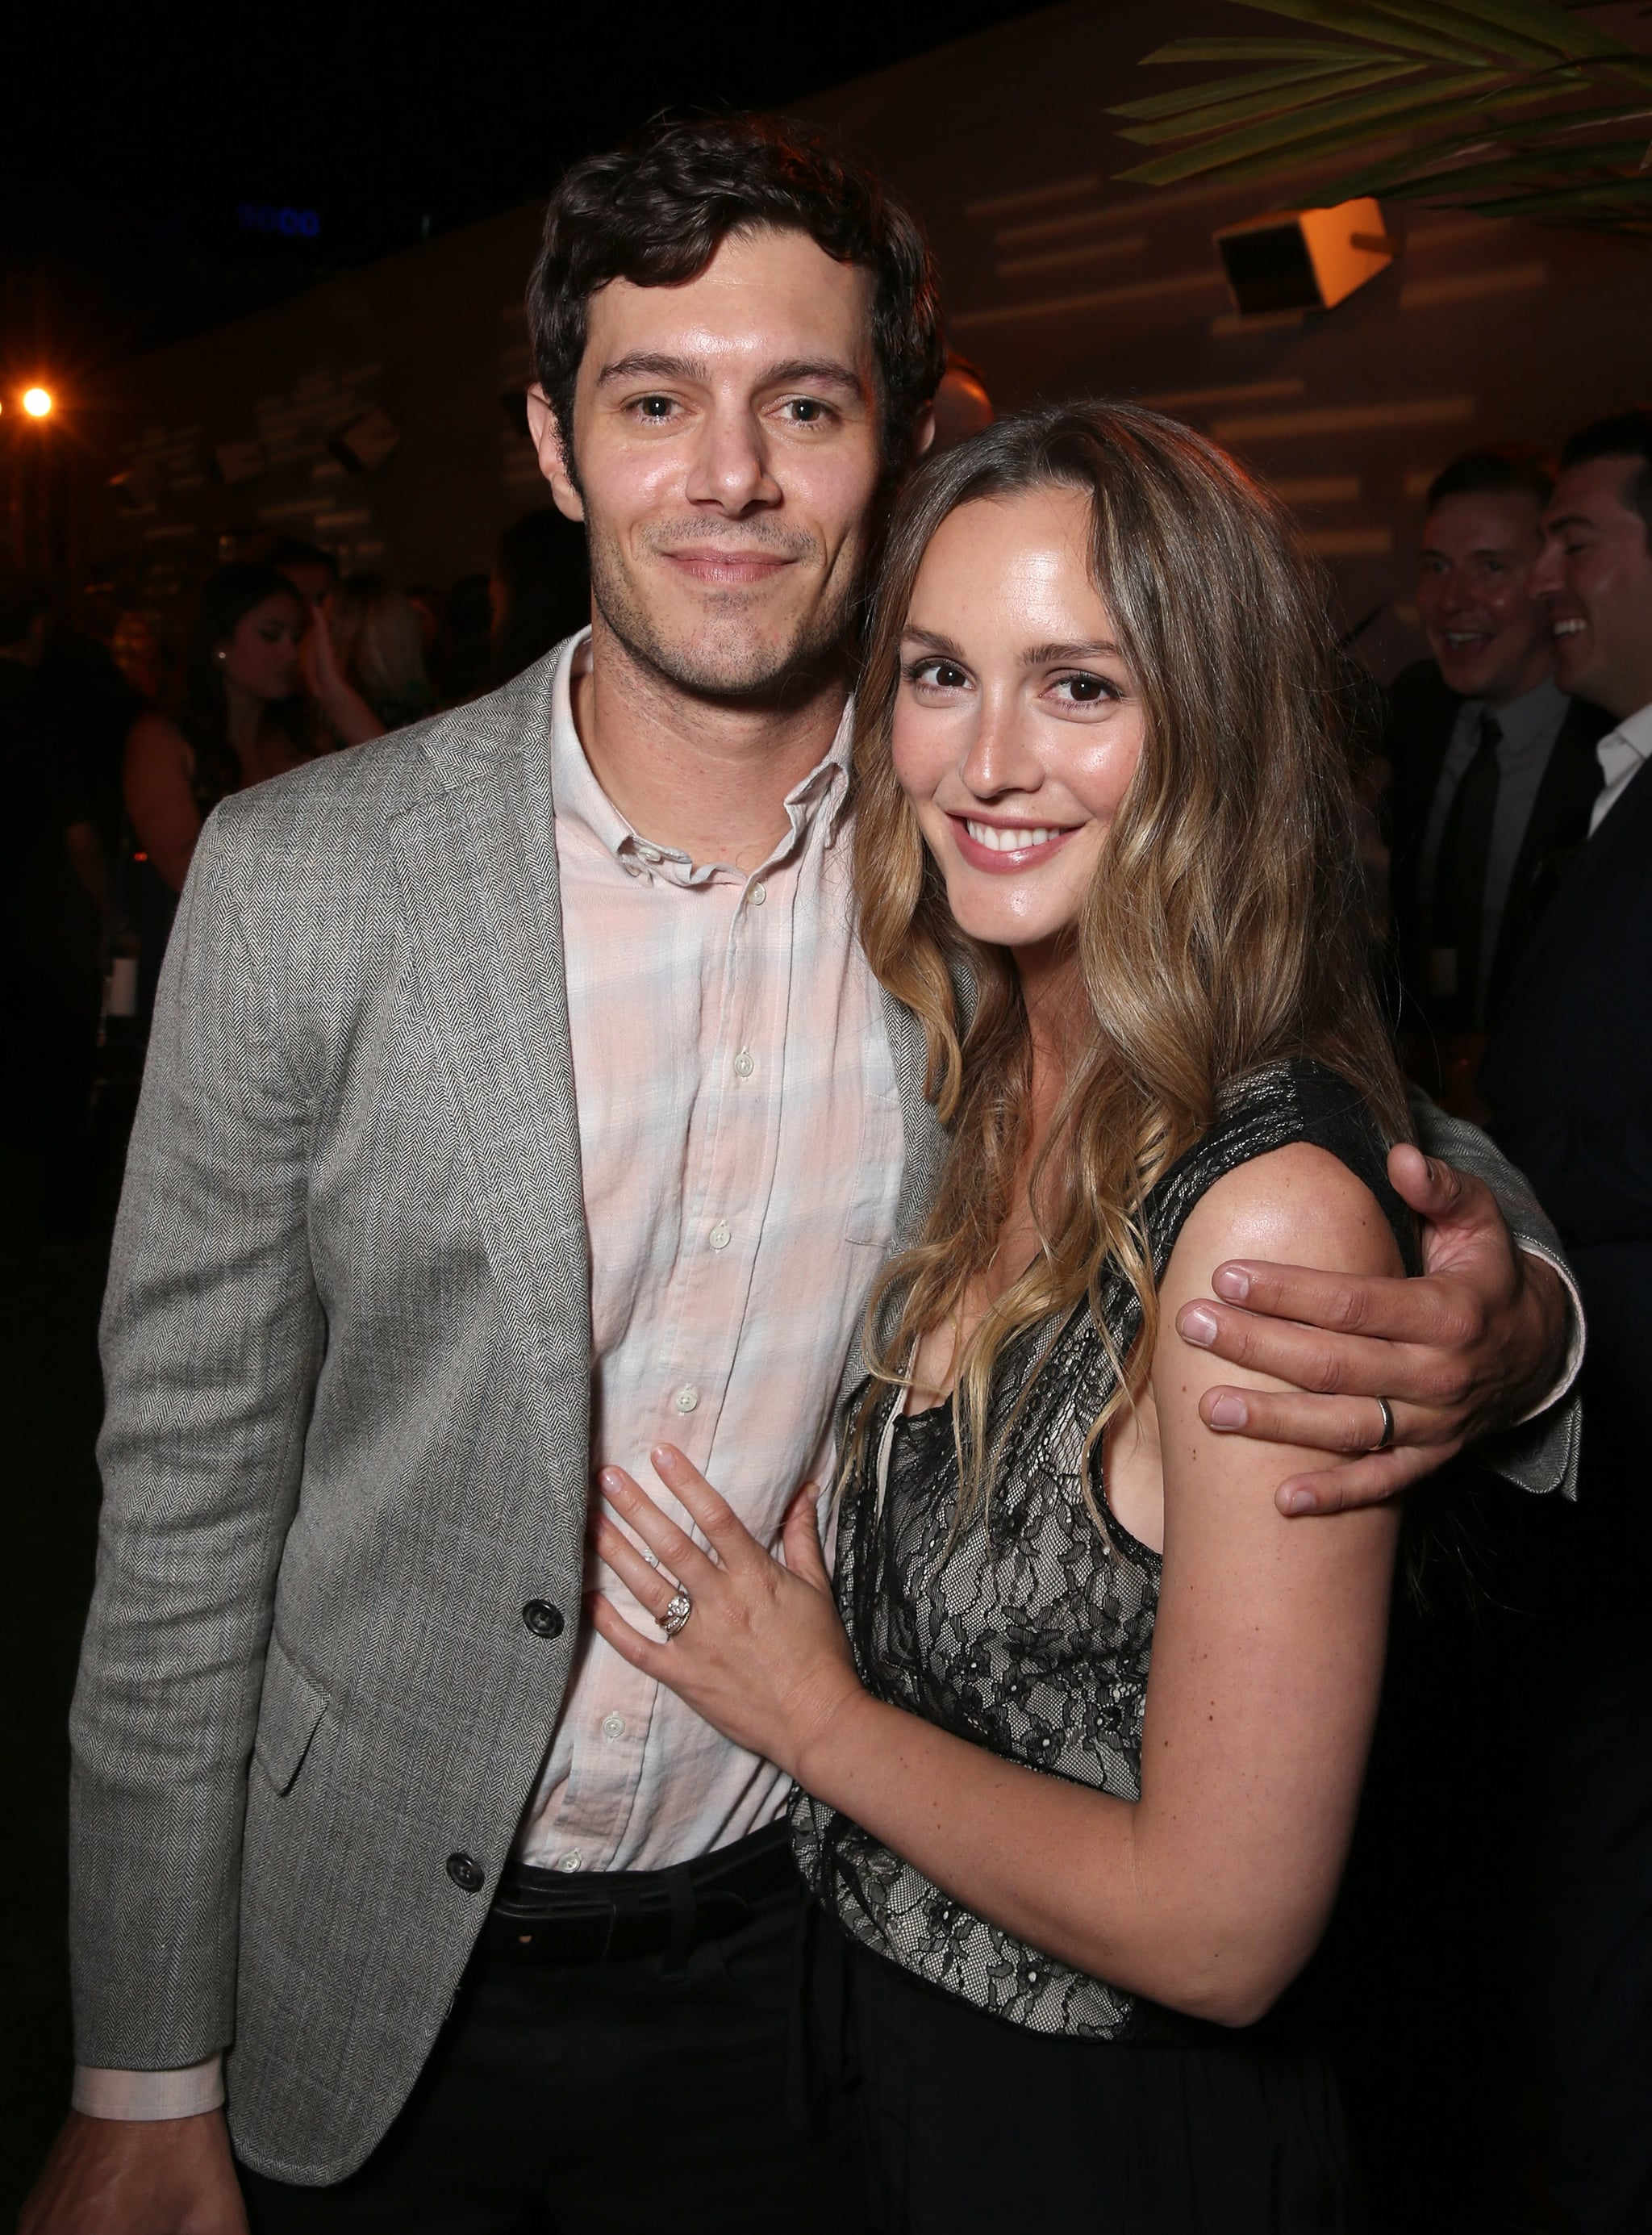 Adam brody leighton meester at startup premiere august 2016 popsugar